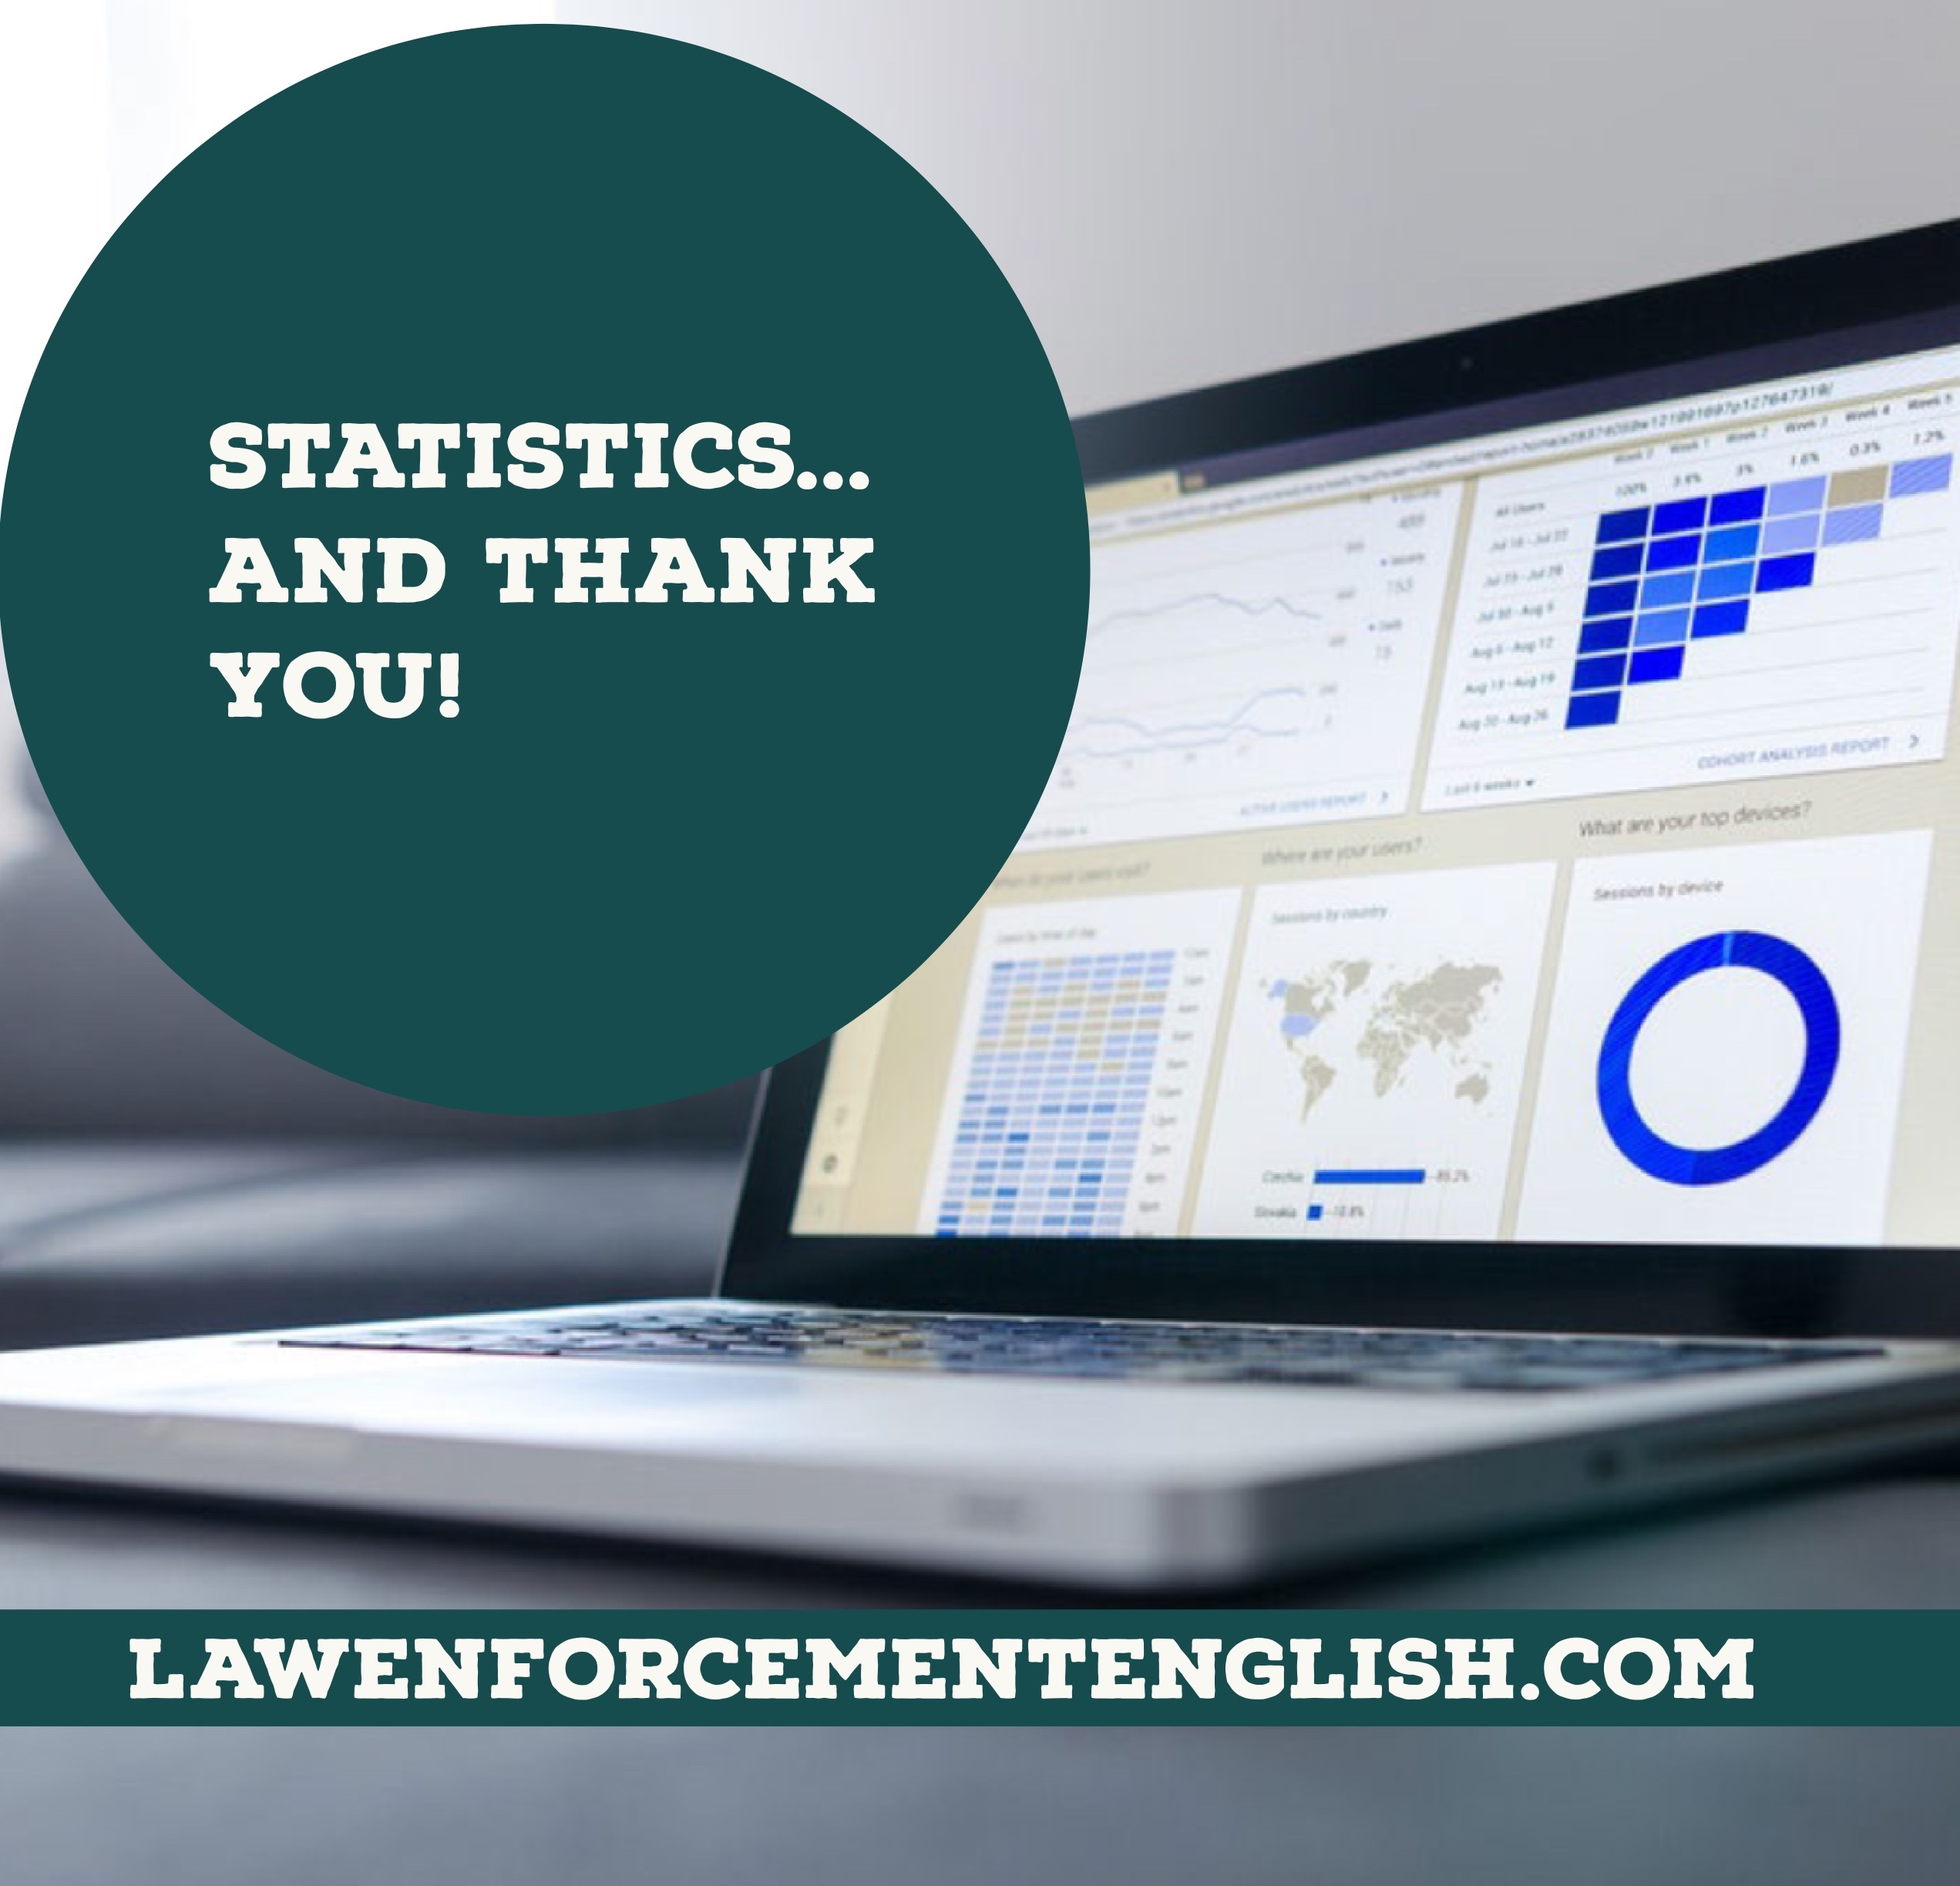 Statistics and thank you